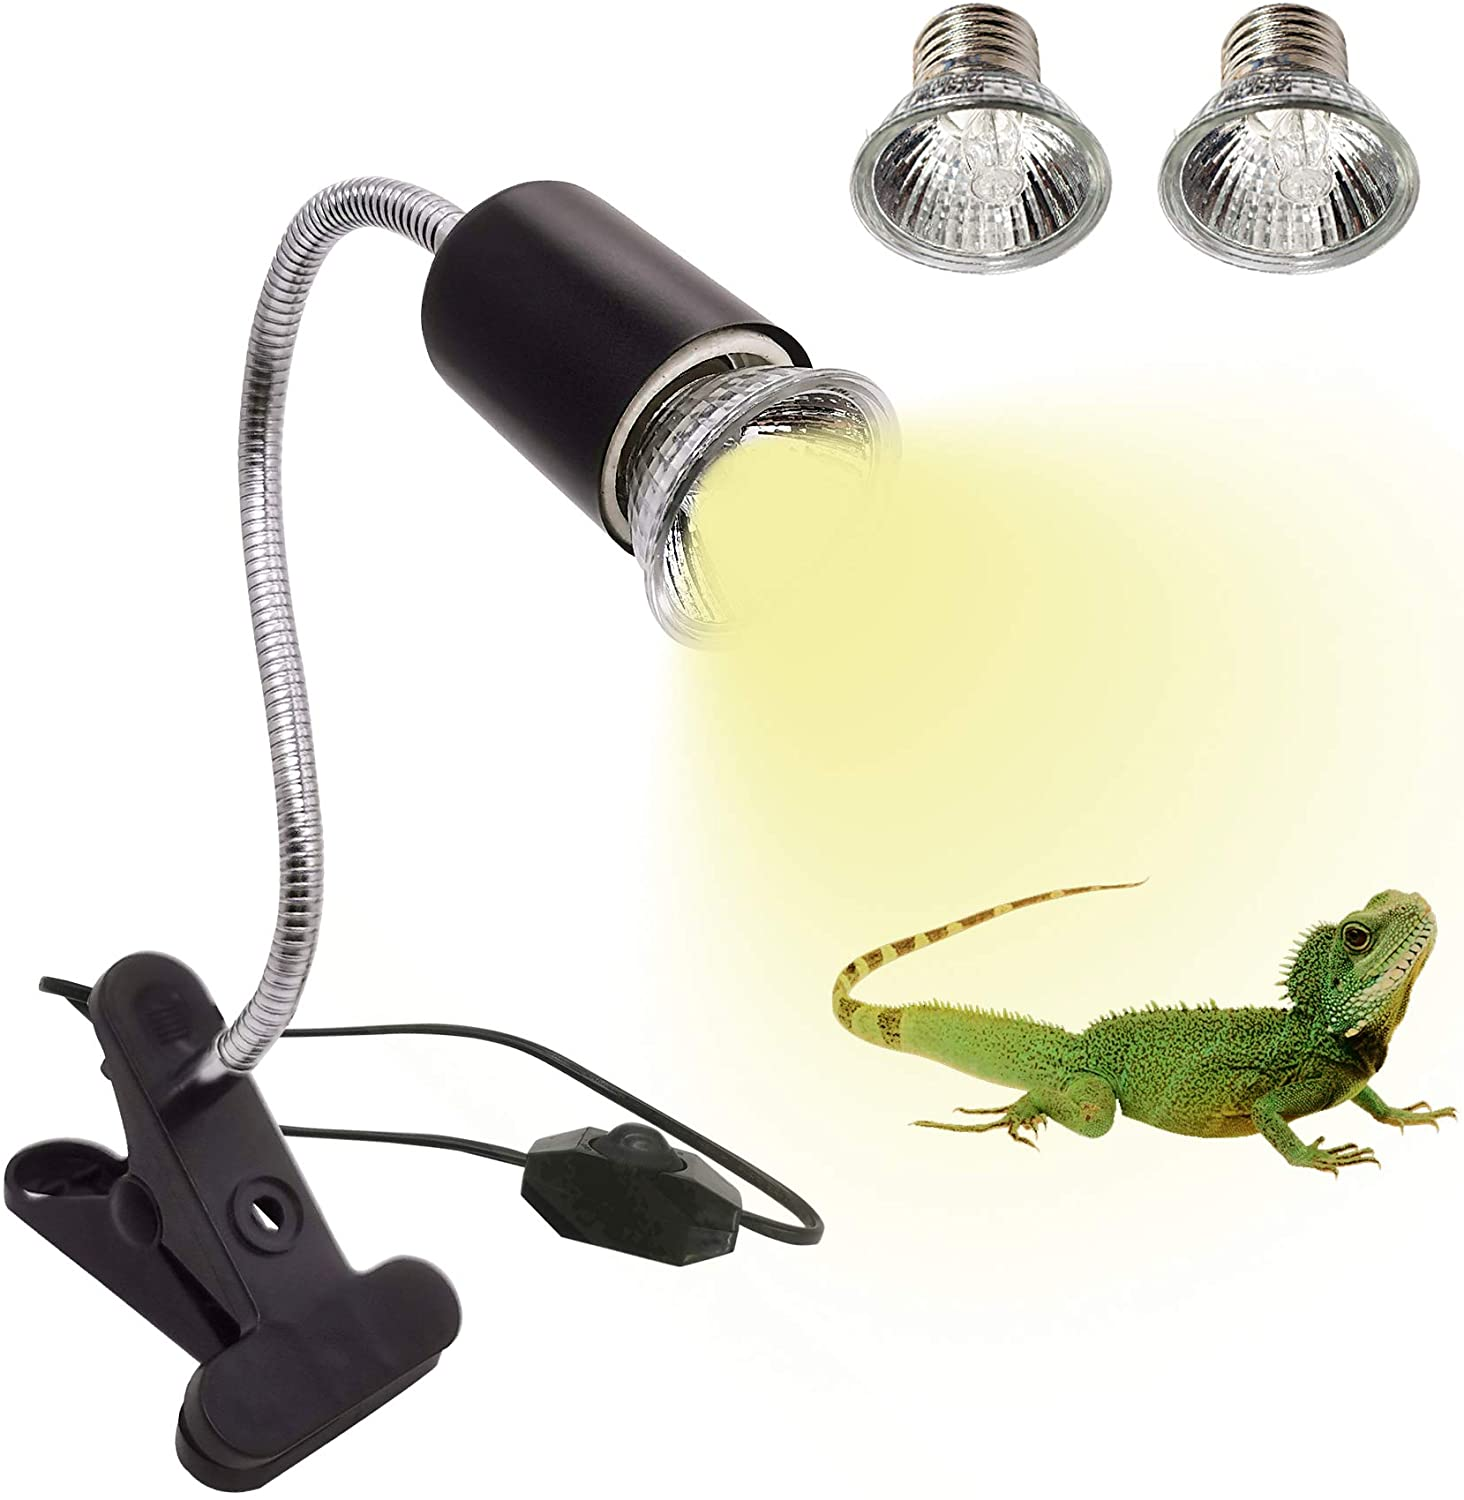 IOOTSEA Reptile Aquarium Heat Lamp Turtle Lights with Clip, 2 UVA UVB Bulbs (50W) Basking Lamp Adjustable Holder, Pet Heating Light Lamp for Reptile Turtle Lizard Snake (E27, 110V)